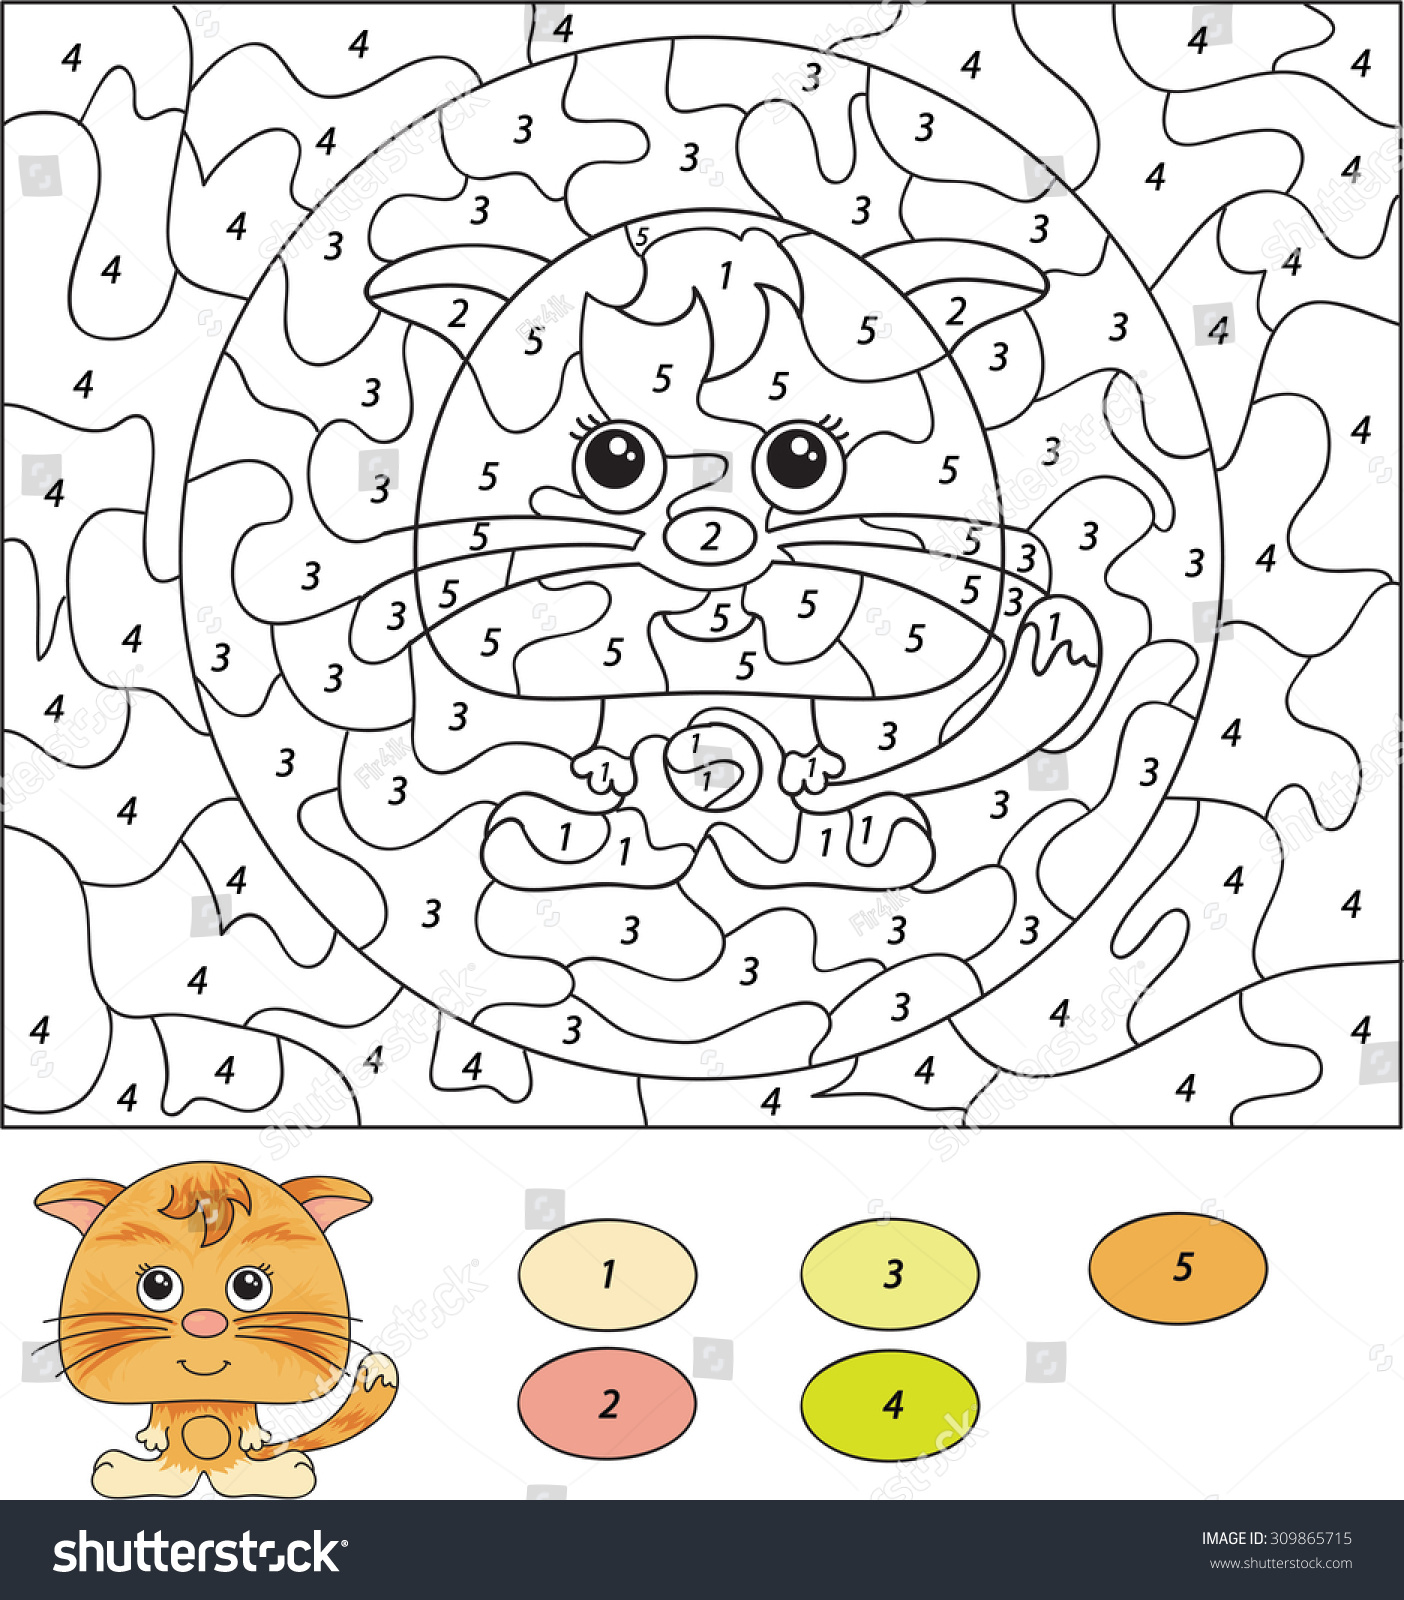 Color by numbers for preschool - Color By Number Educational Game For Kids Cute Kitten Or Cat Vector Illustration For